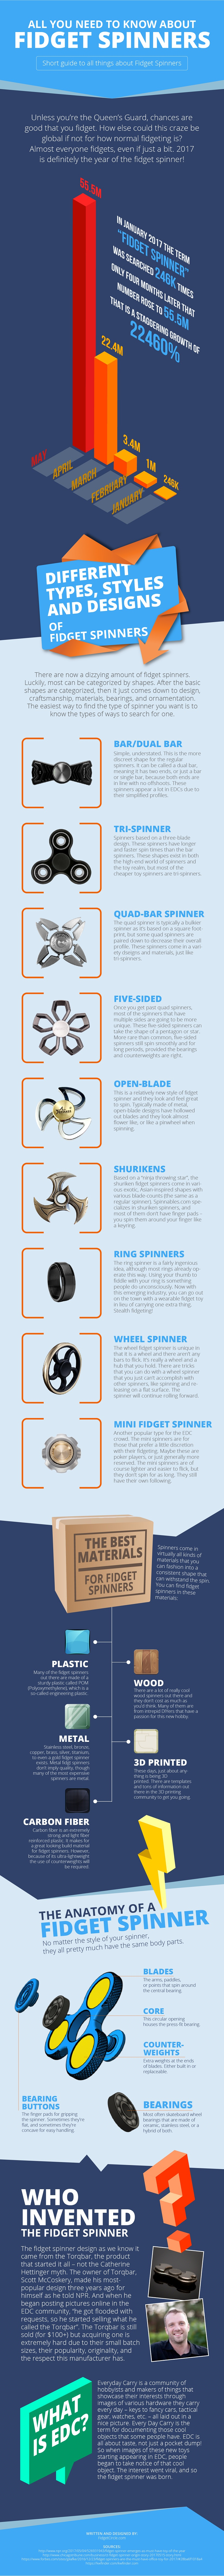 fidget-spinners-infographic-site -